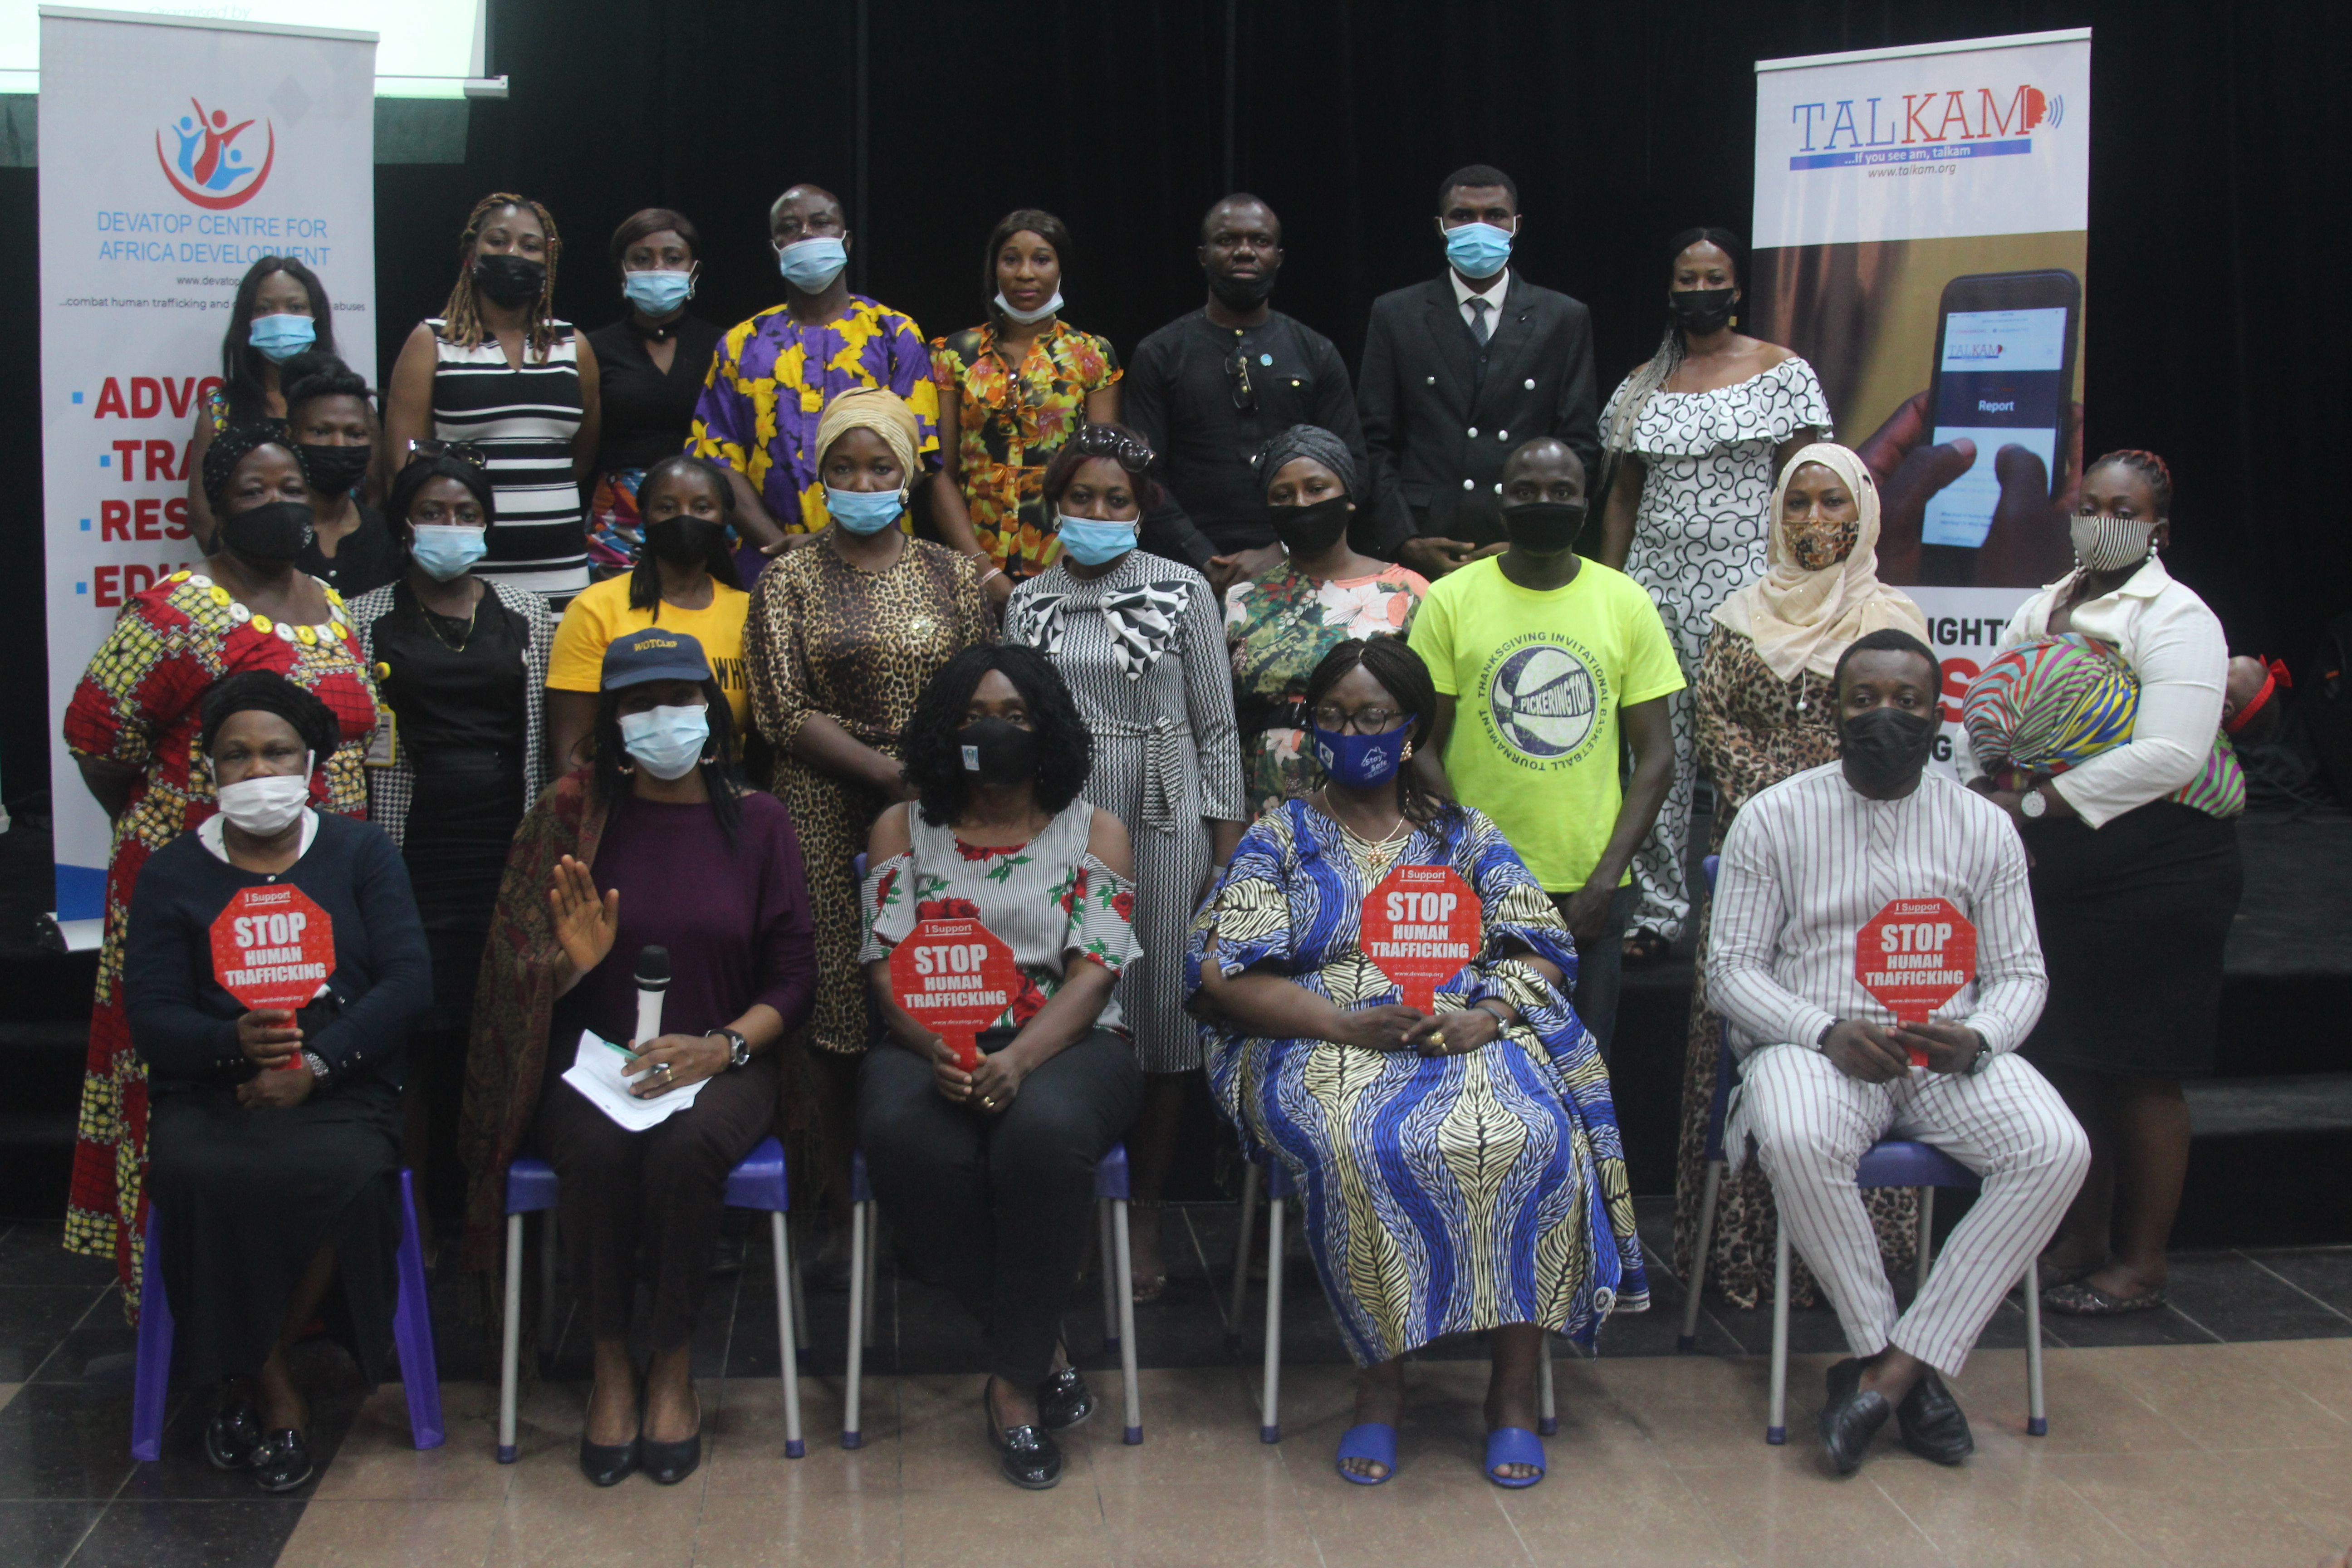 OVER 50 ADVOCATES TRAINED UNDER